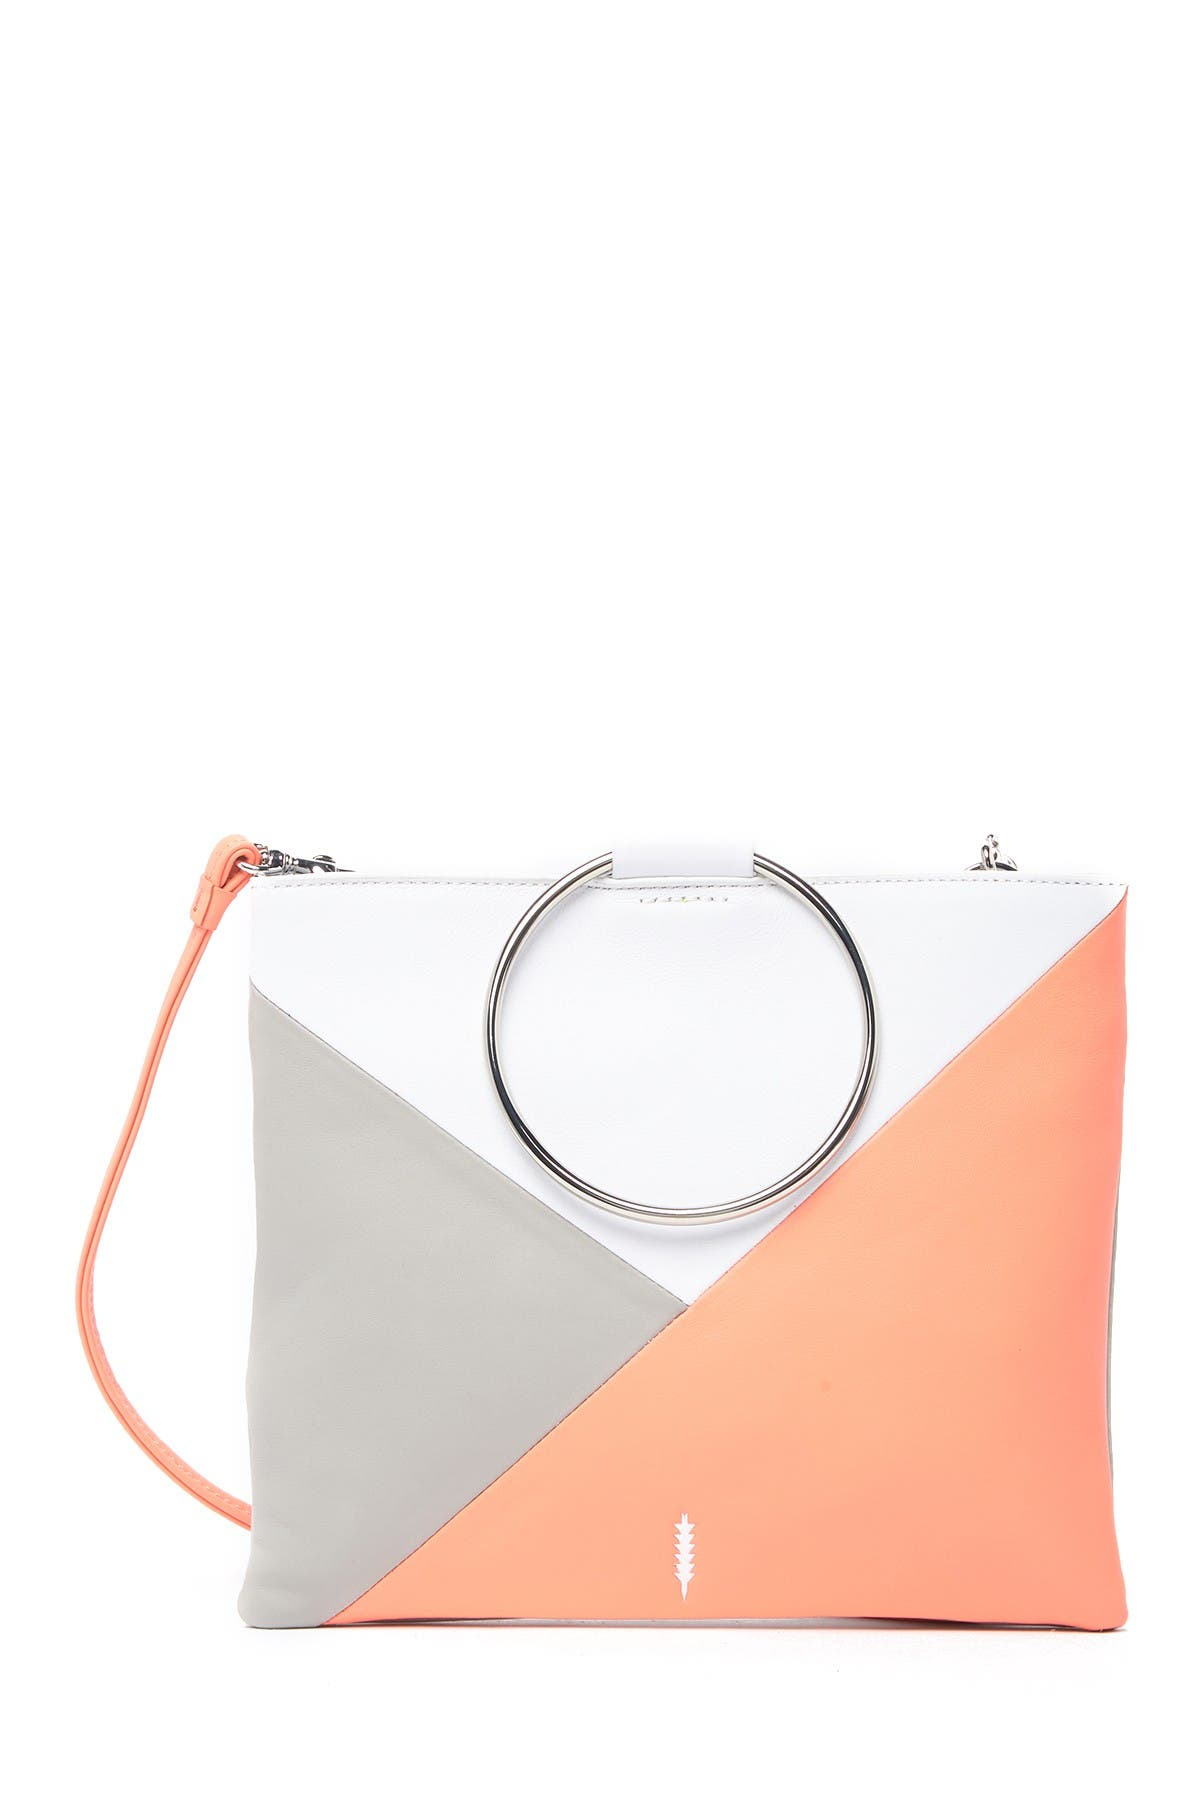 Image of THACKER Le Pouch Colorblock Leather Crossbody Bag